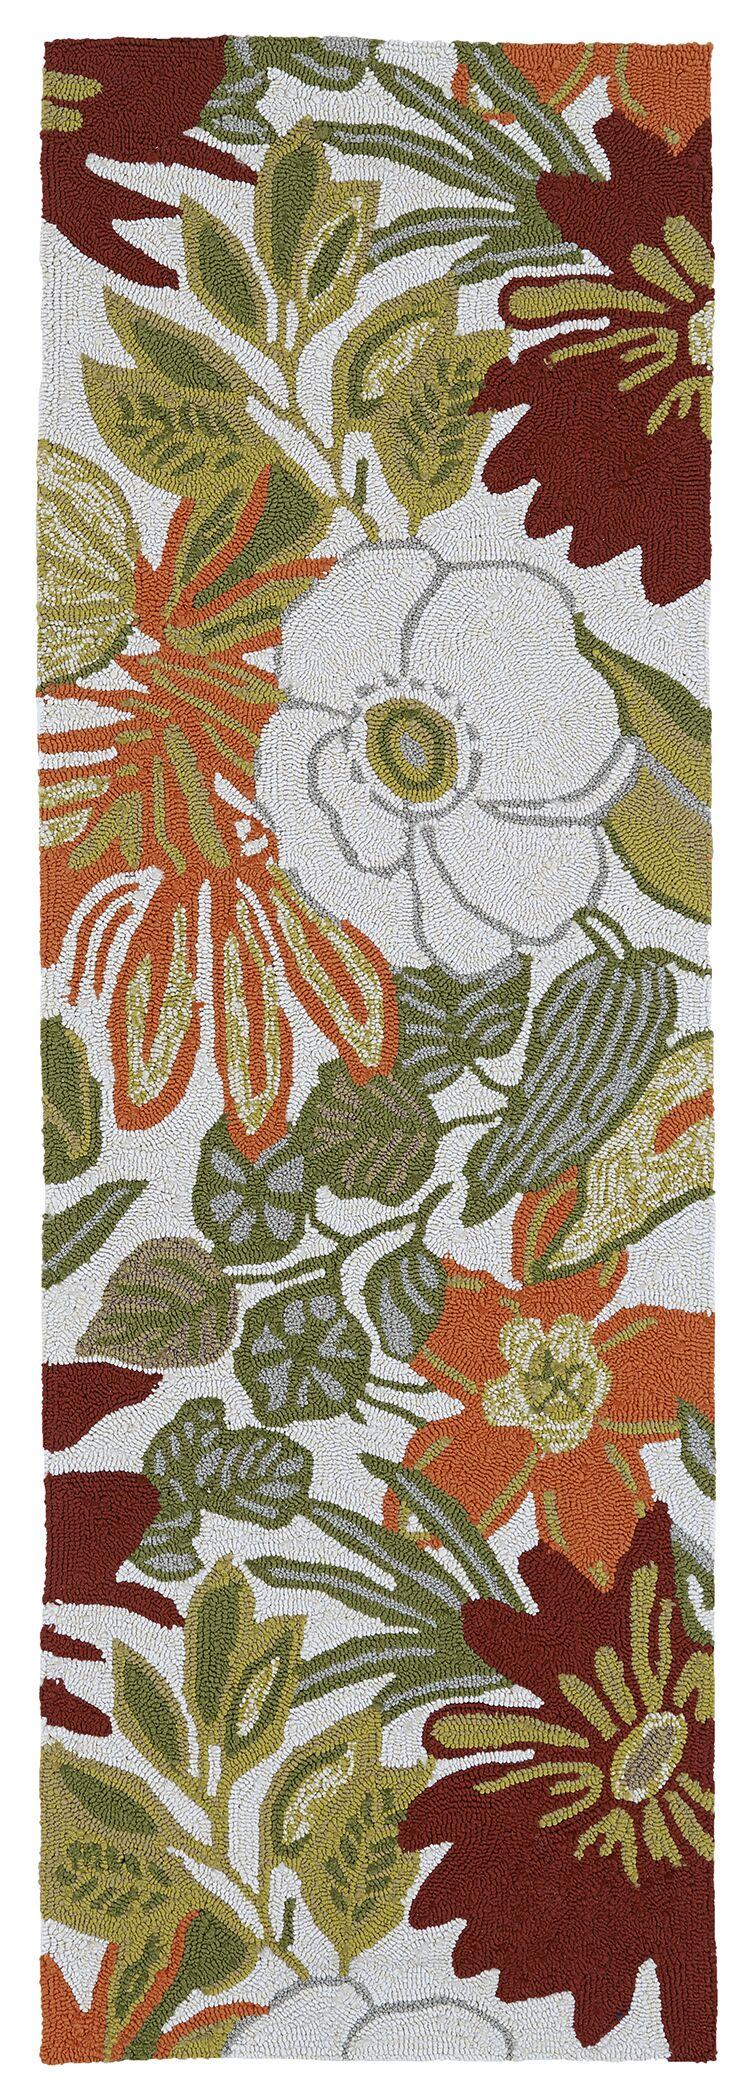 Jamaica Tufted Indoor/Outdoor Area Rug Rug Size: Rectangle 5' x 7'6